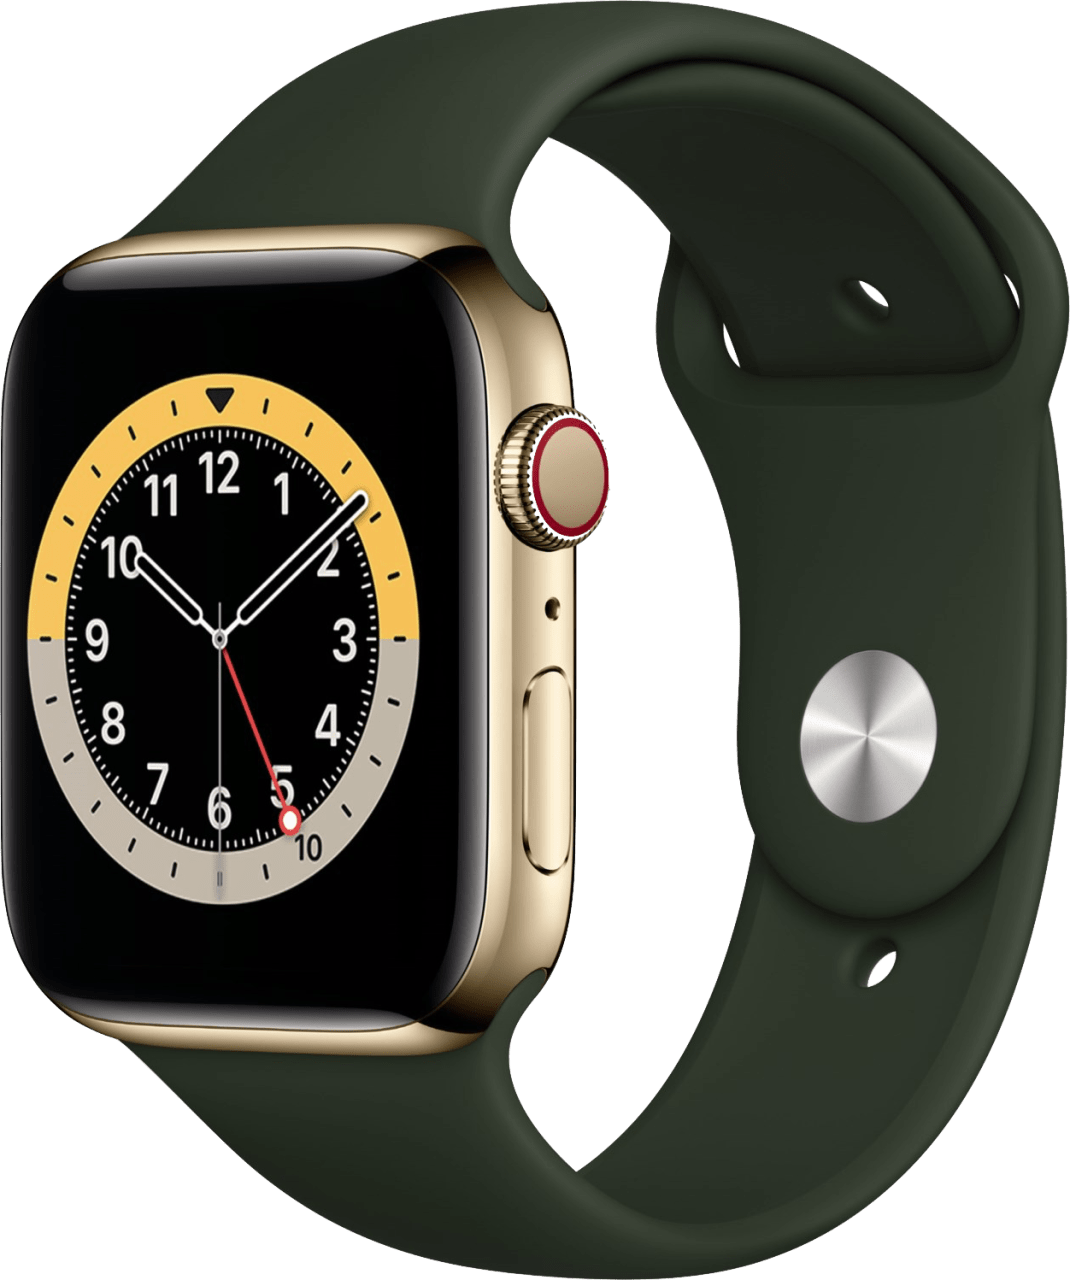 Cyprus green Apple Watch Series 6 GPS + Cellular , 40mm Stainless steel case, Sport band.1